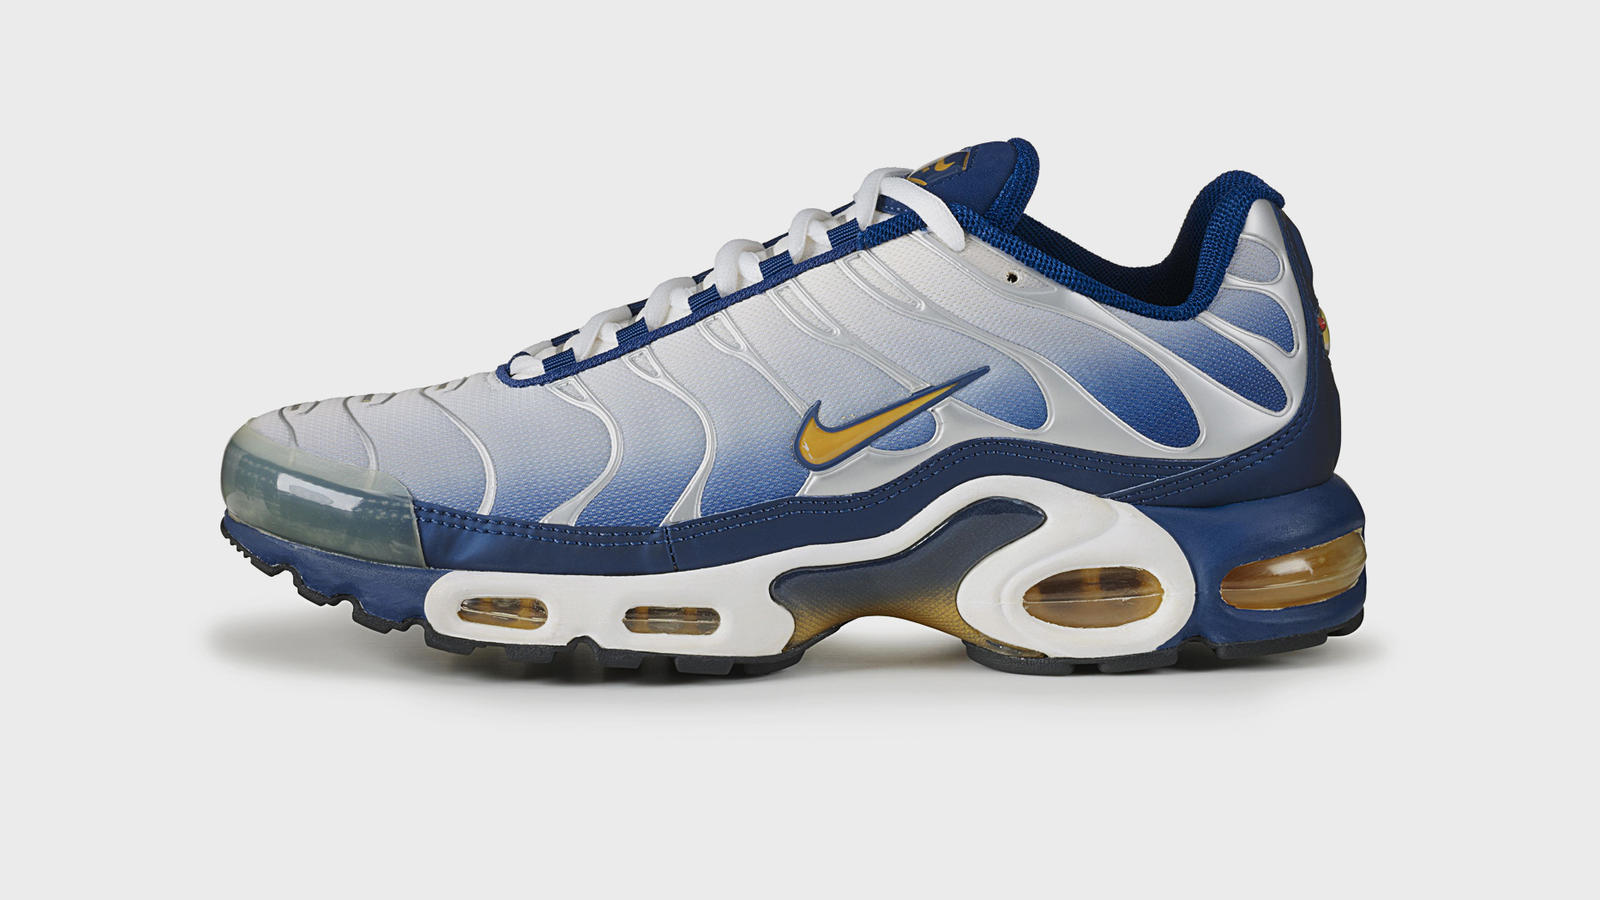 competitive price 58806 4b7c6 The Untold Story of the Nike Air Max Plus 24